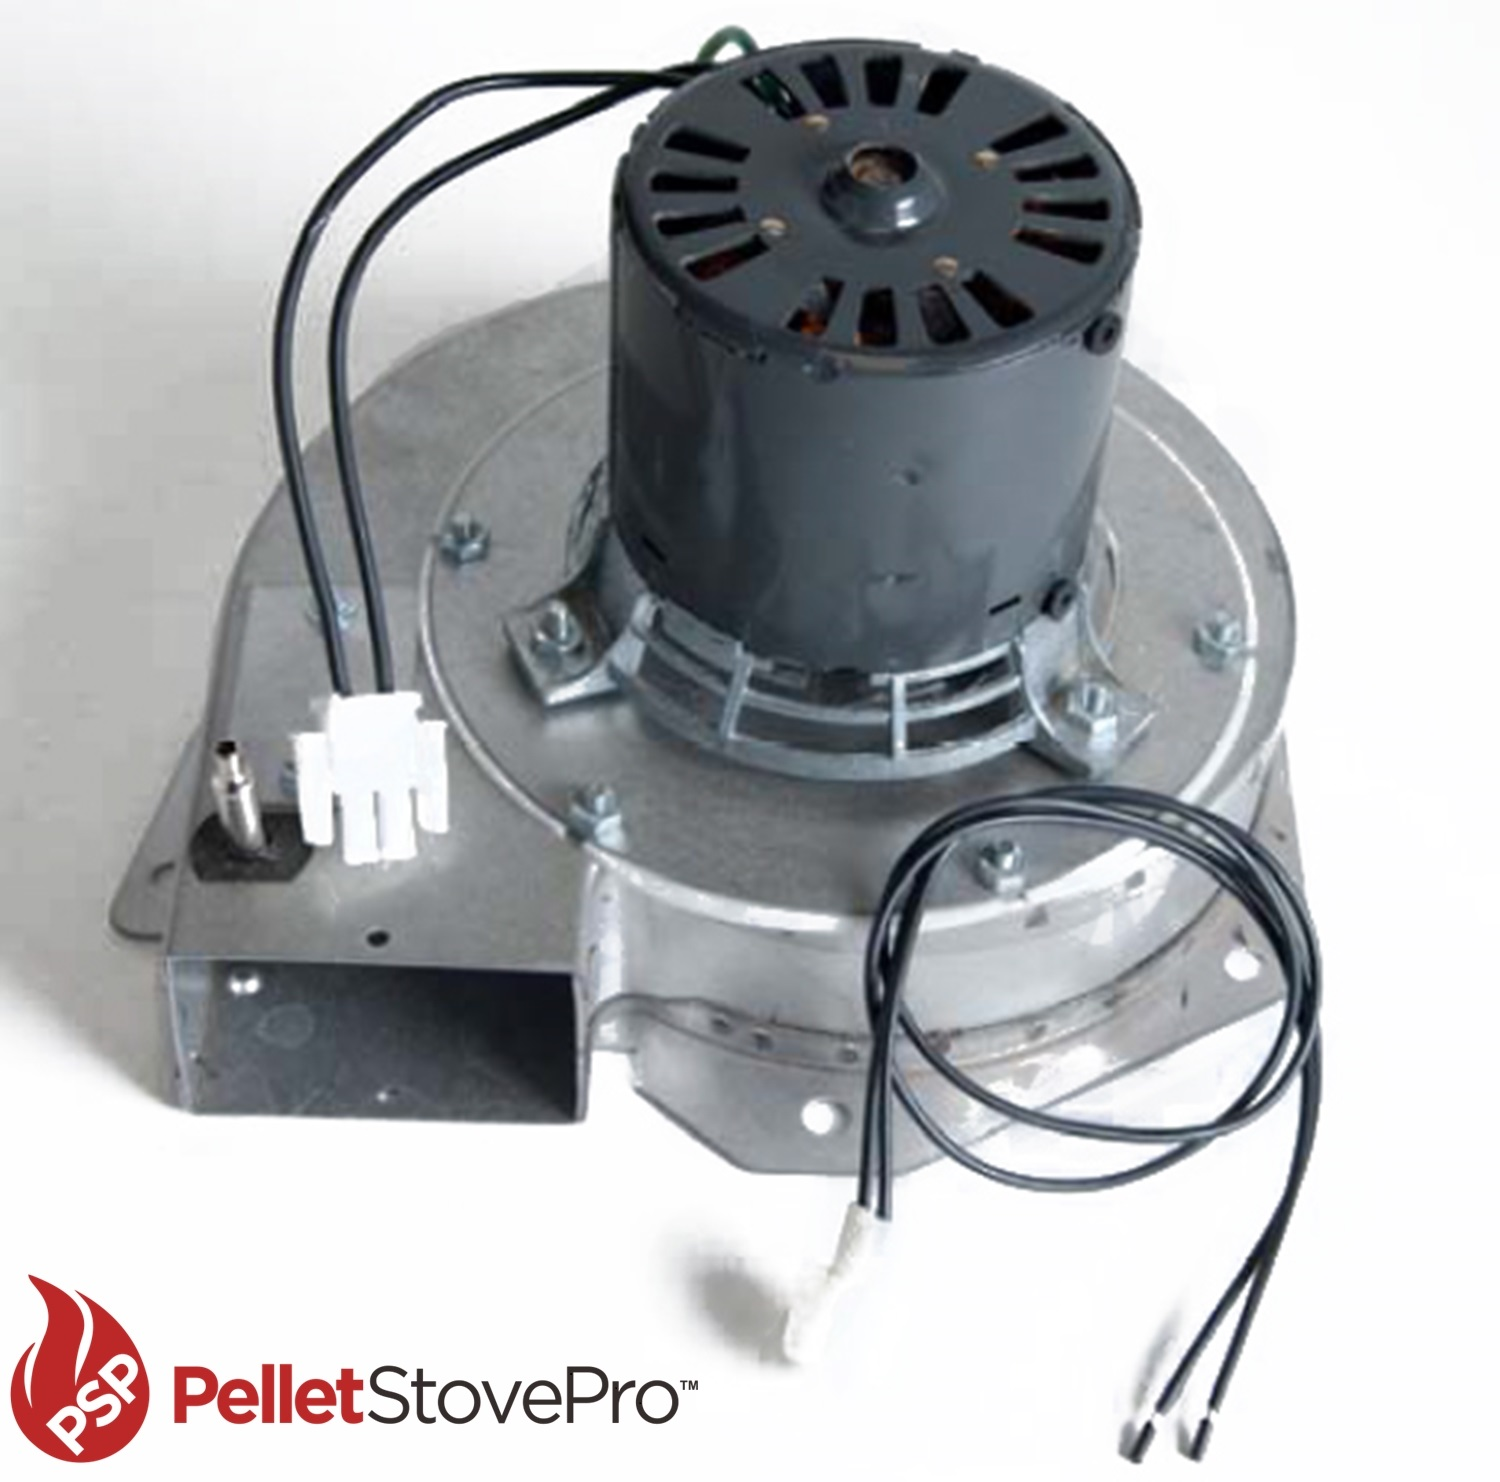 Oven Fans And Blowers : Aladdin pellet stove exhaust motor blower w housing